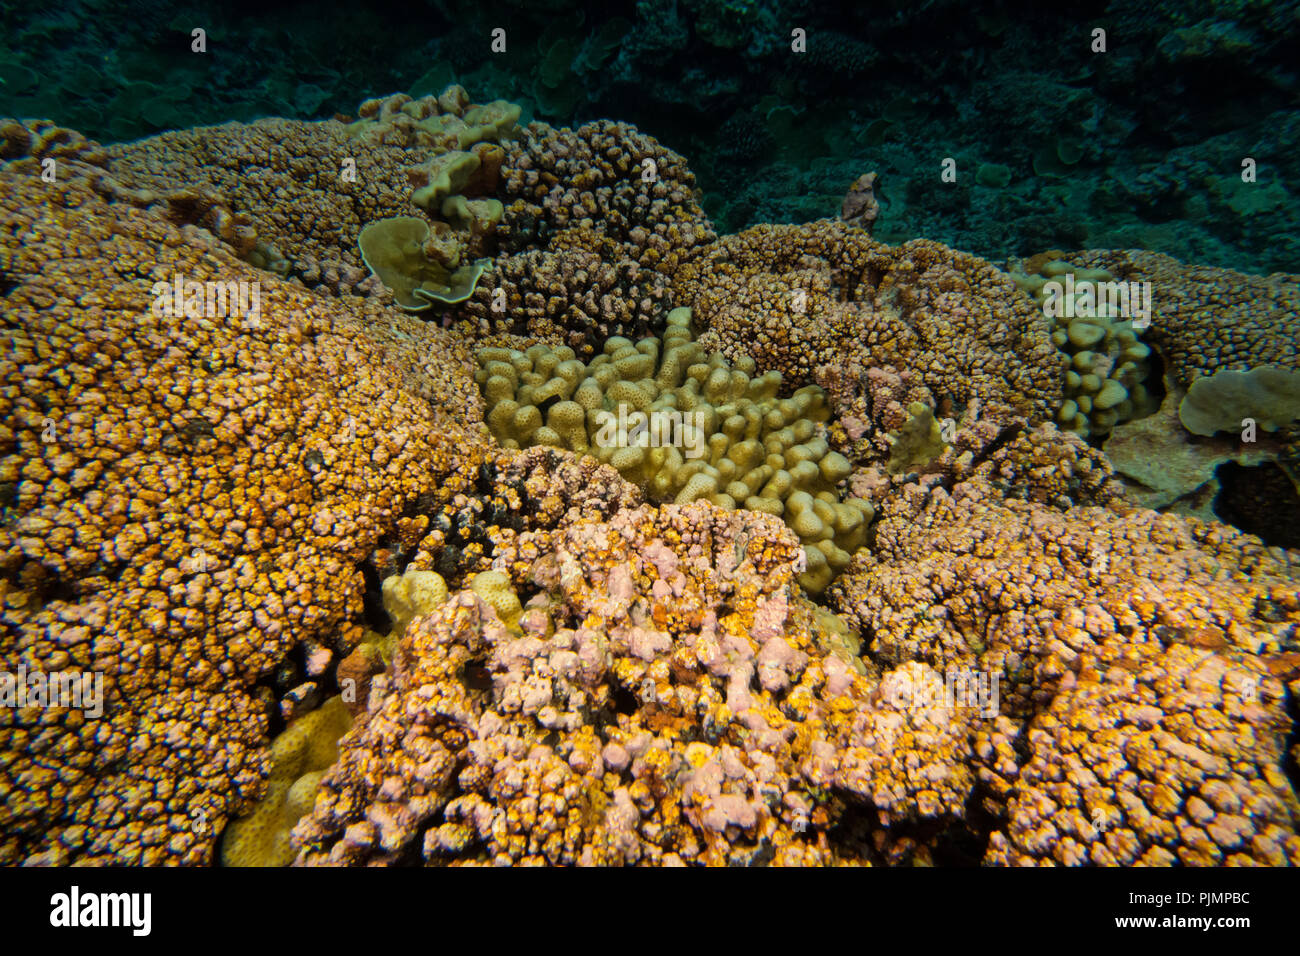 Diving on the reef of Millennium atoll in Kiribati showing the dead coral from coral bleaching due to climate change. Stock Photo